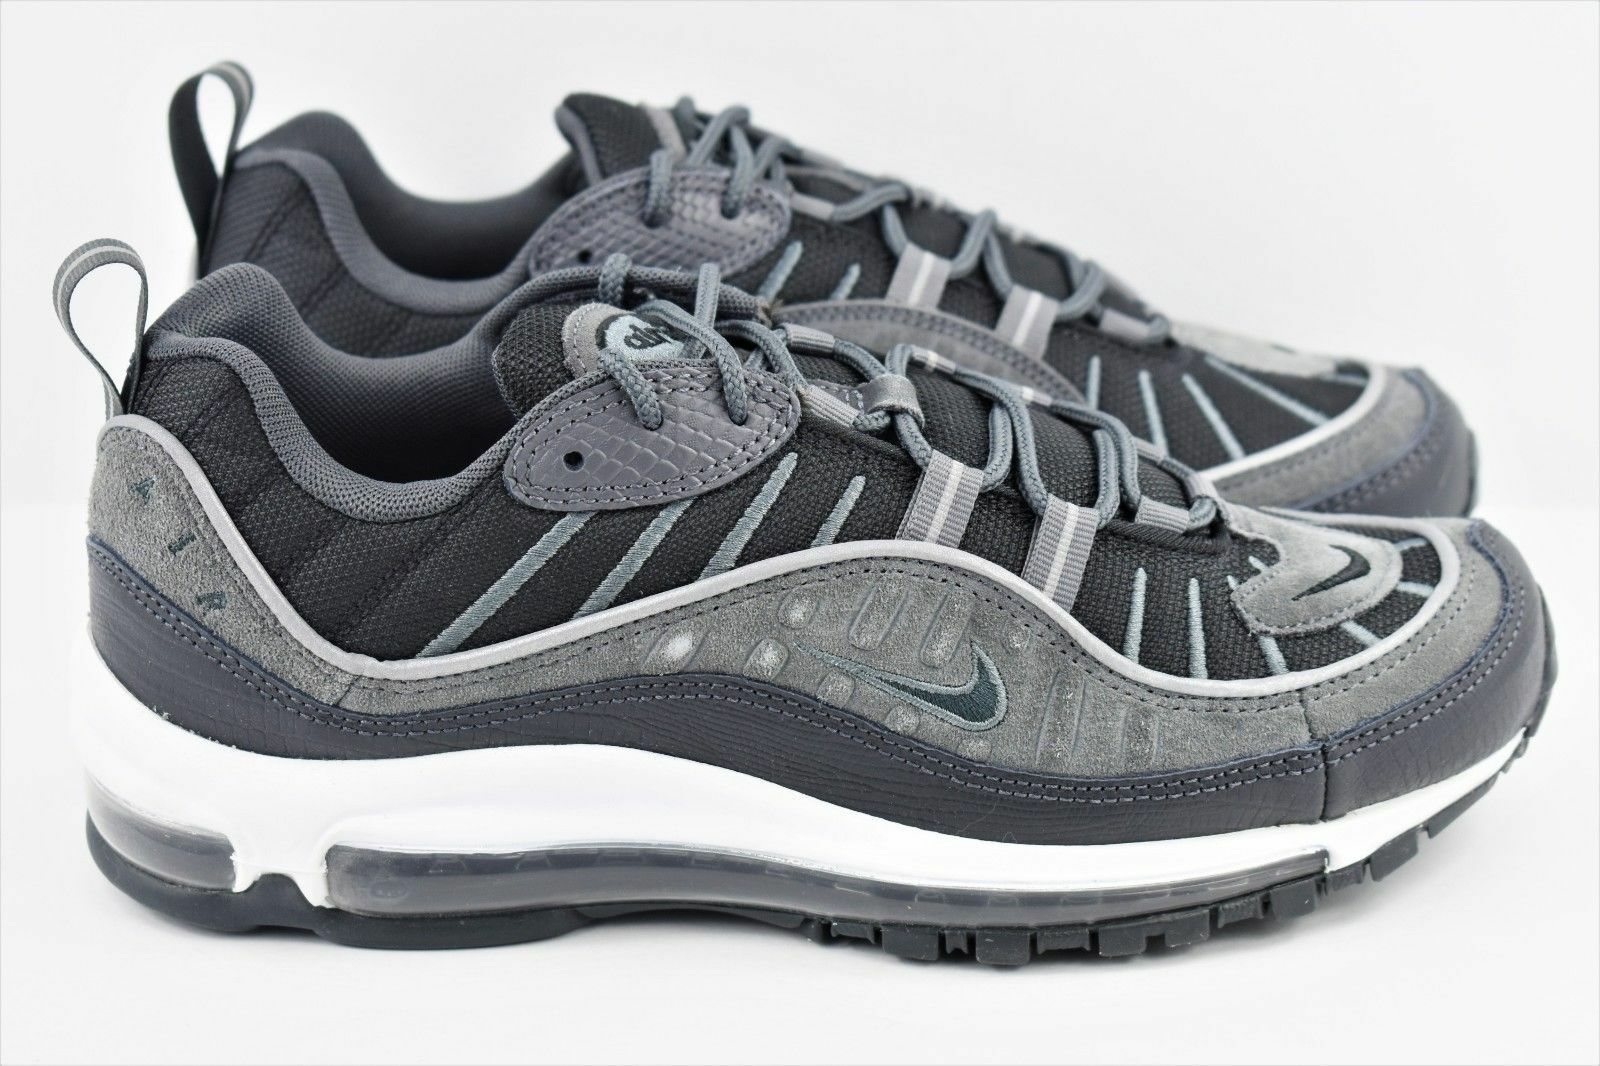 Nike Air Max 98 SE Men's shoes Black Anthracite Grey AO9380 001 SZ 6.5US